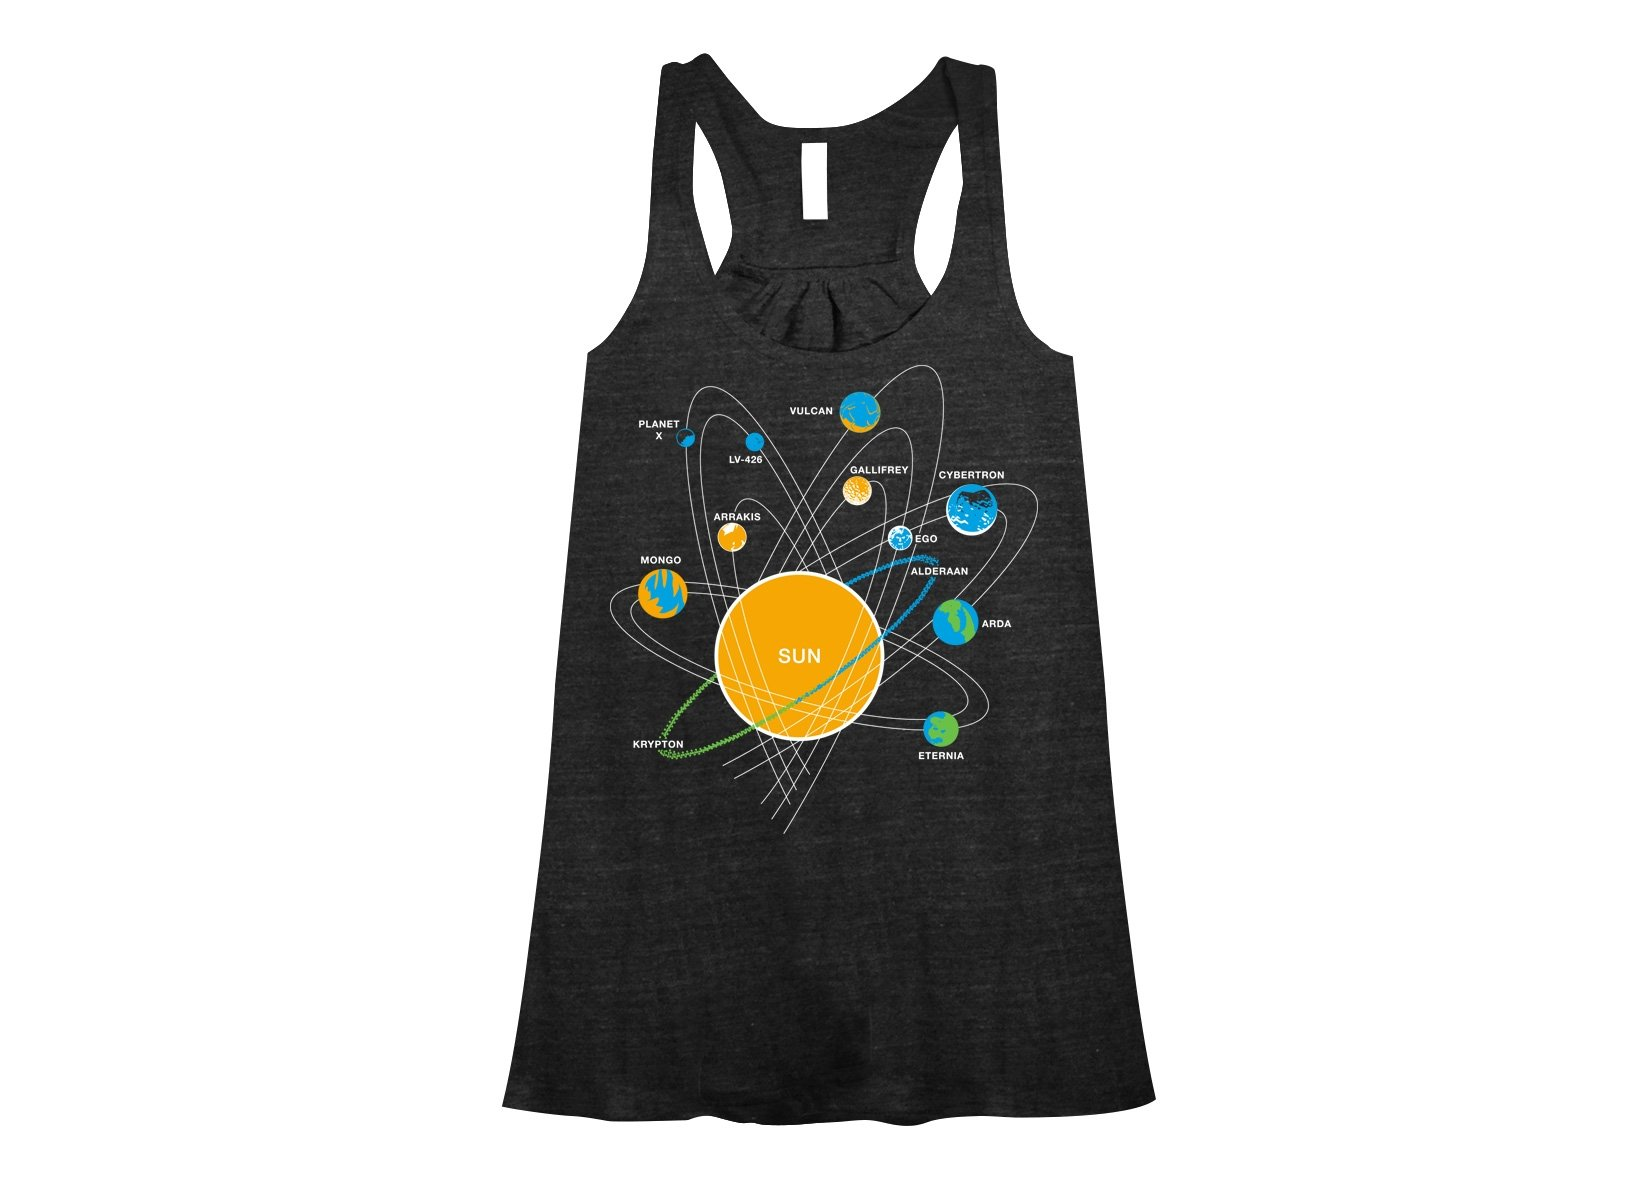 Solar System on Womens Tanks T-Shirt